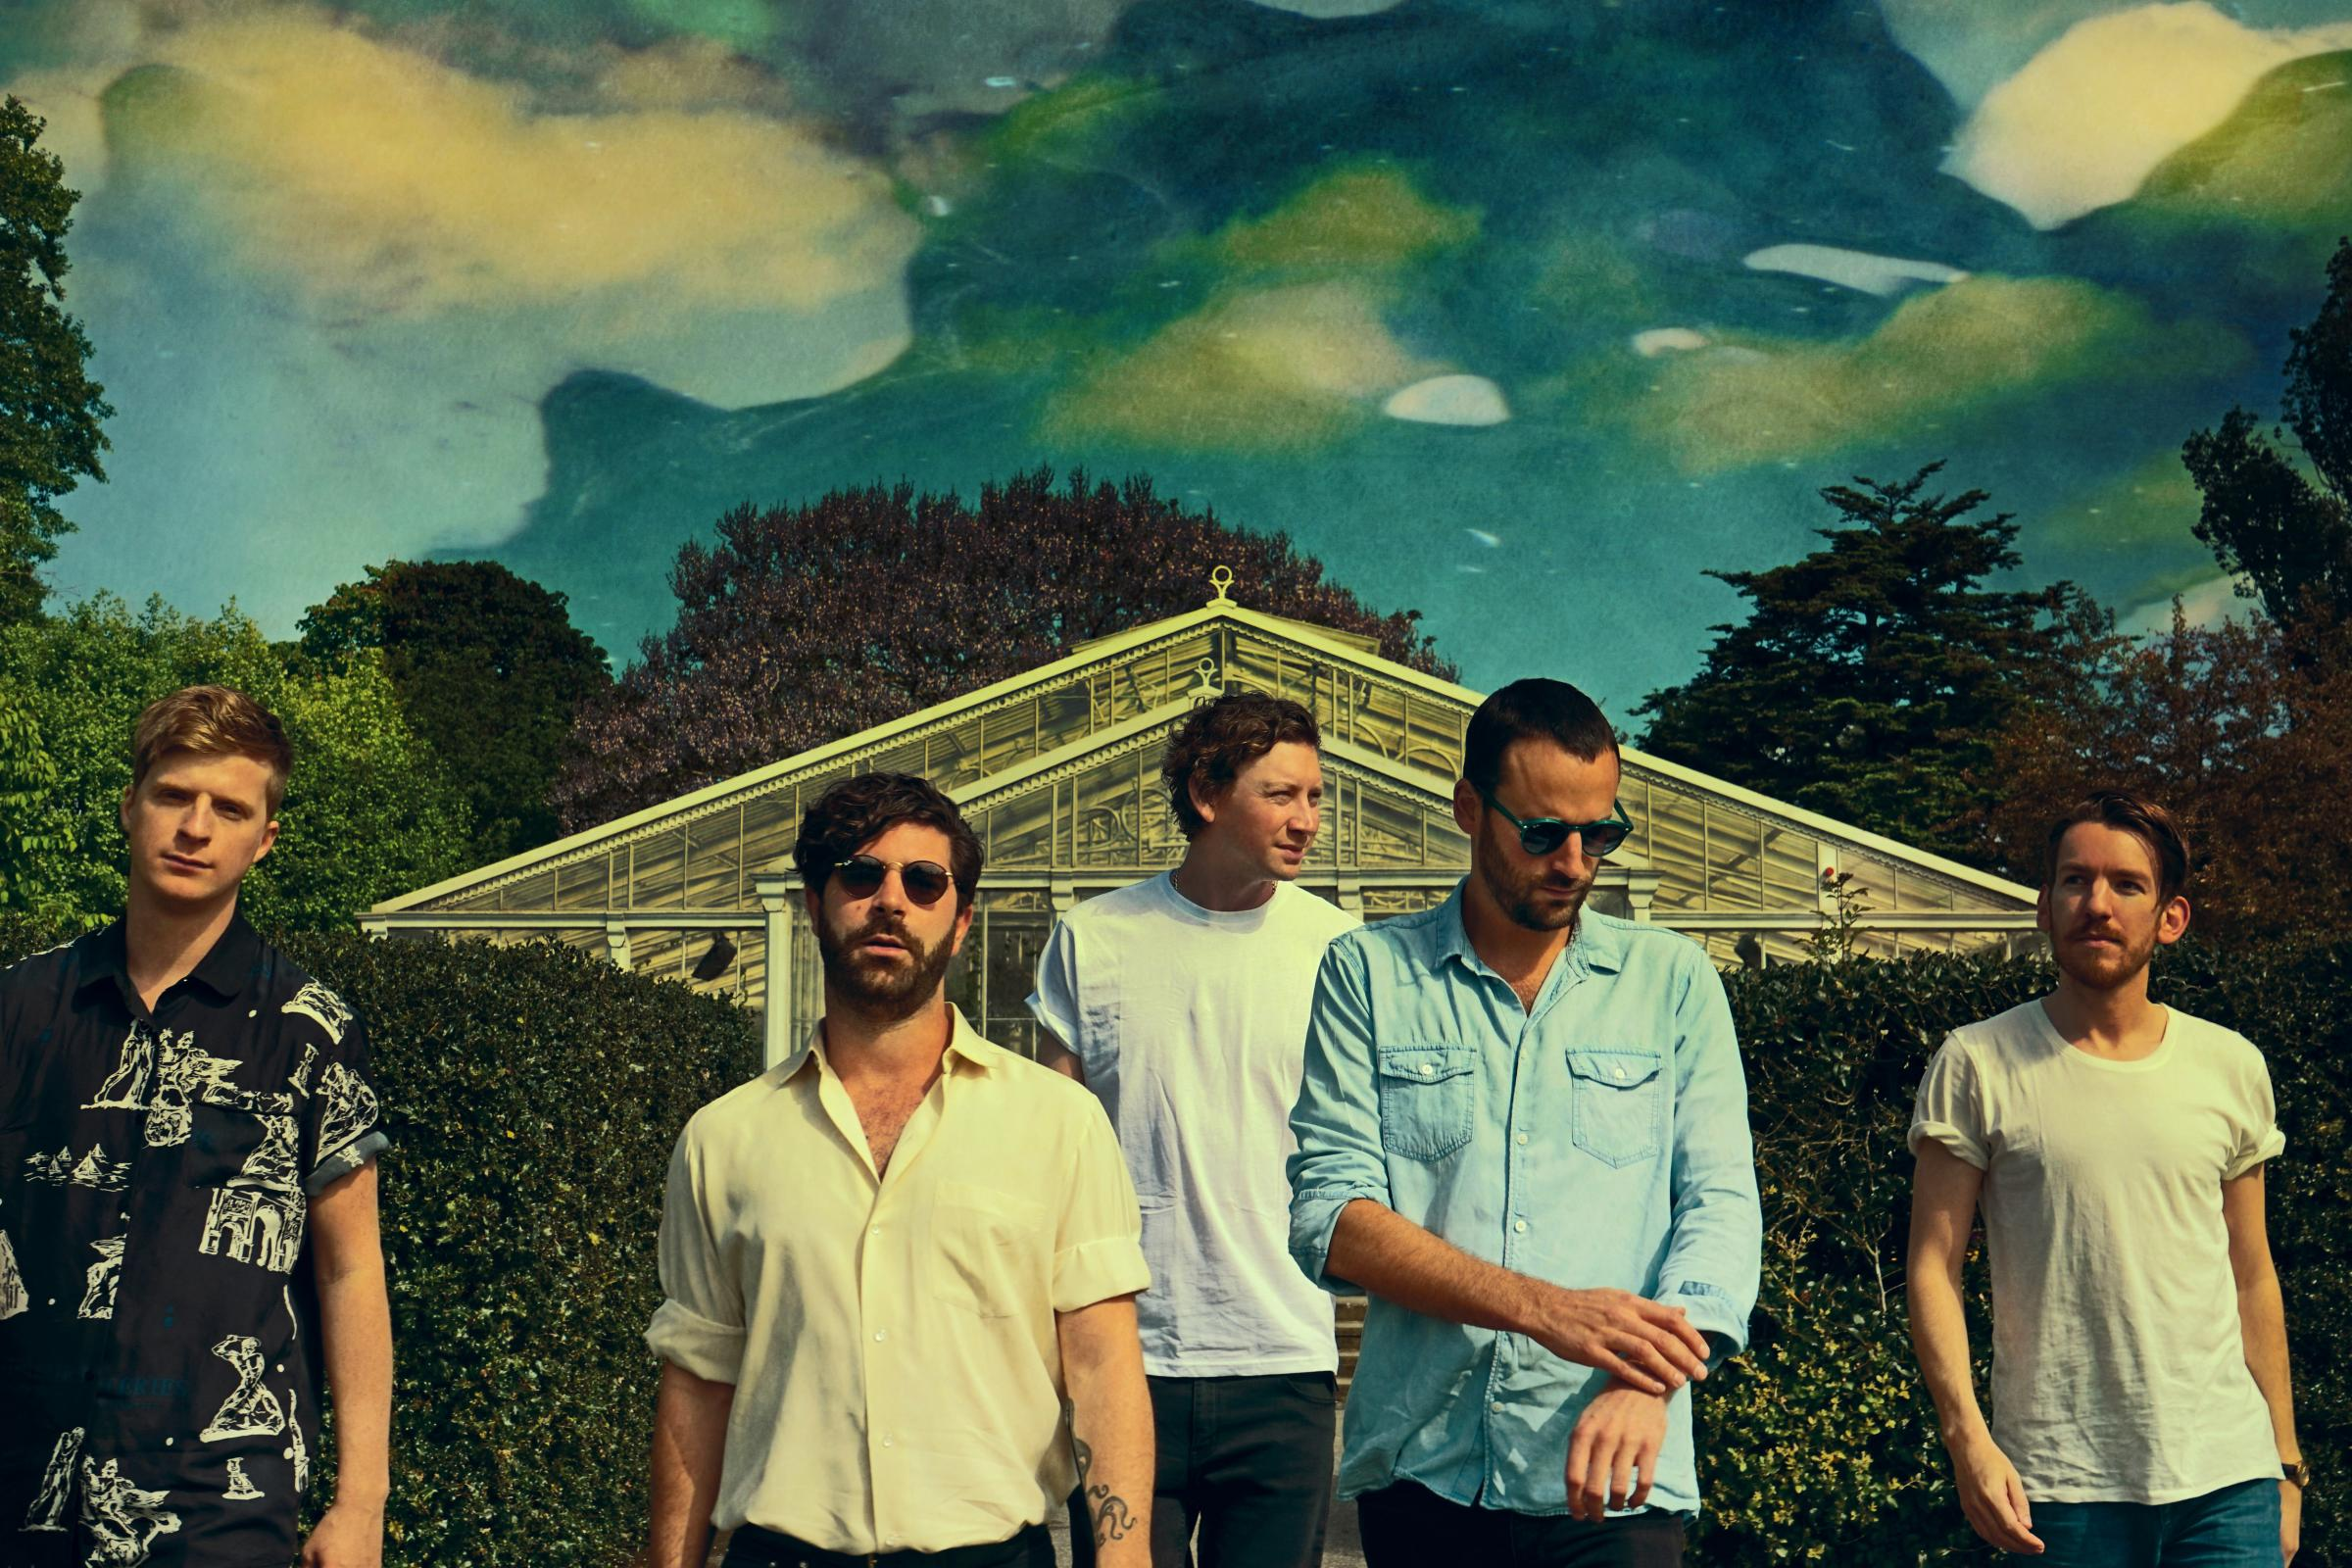 Galactic ambitions? Oxford indie-rockers Foals